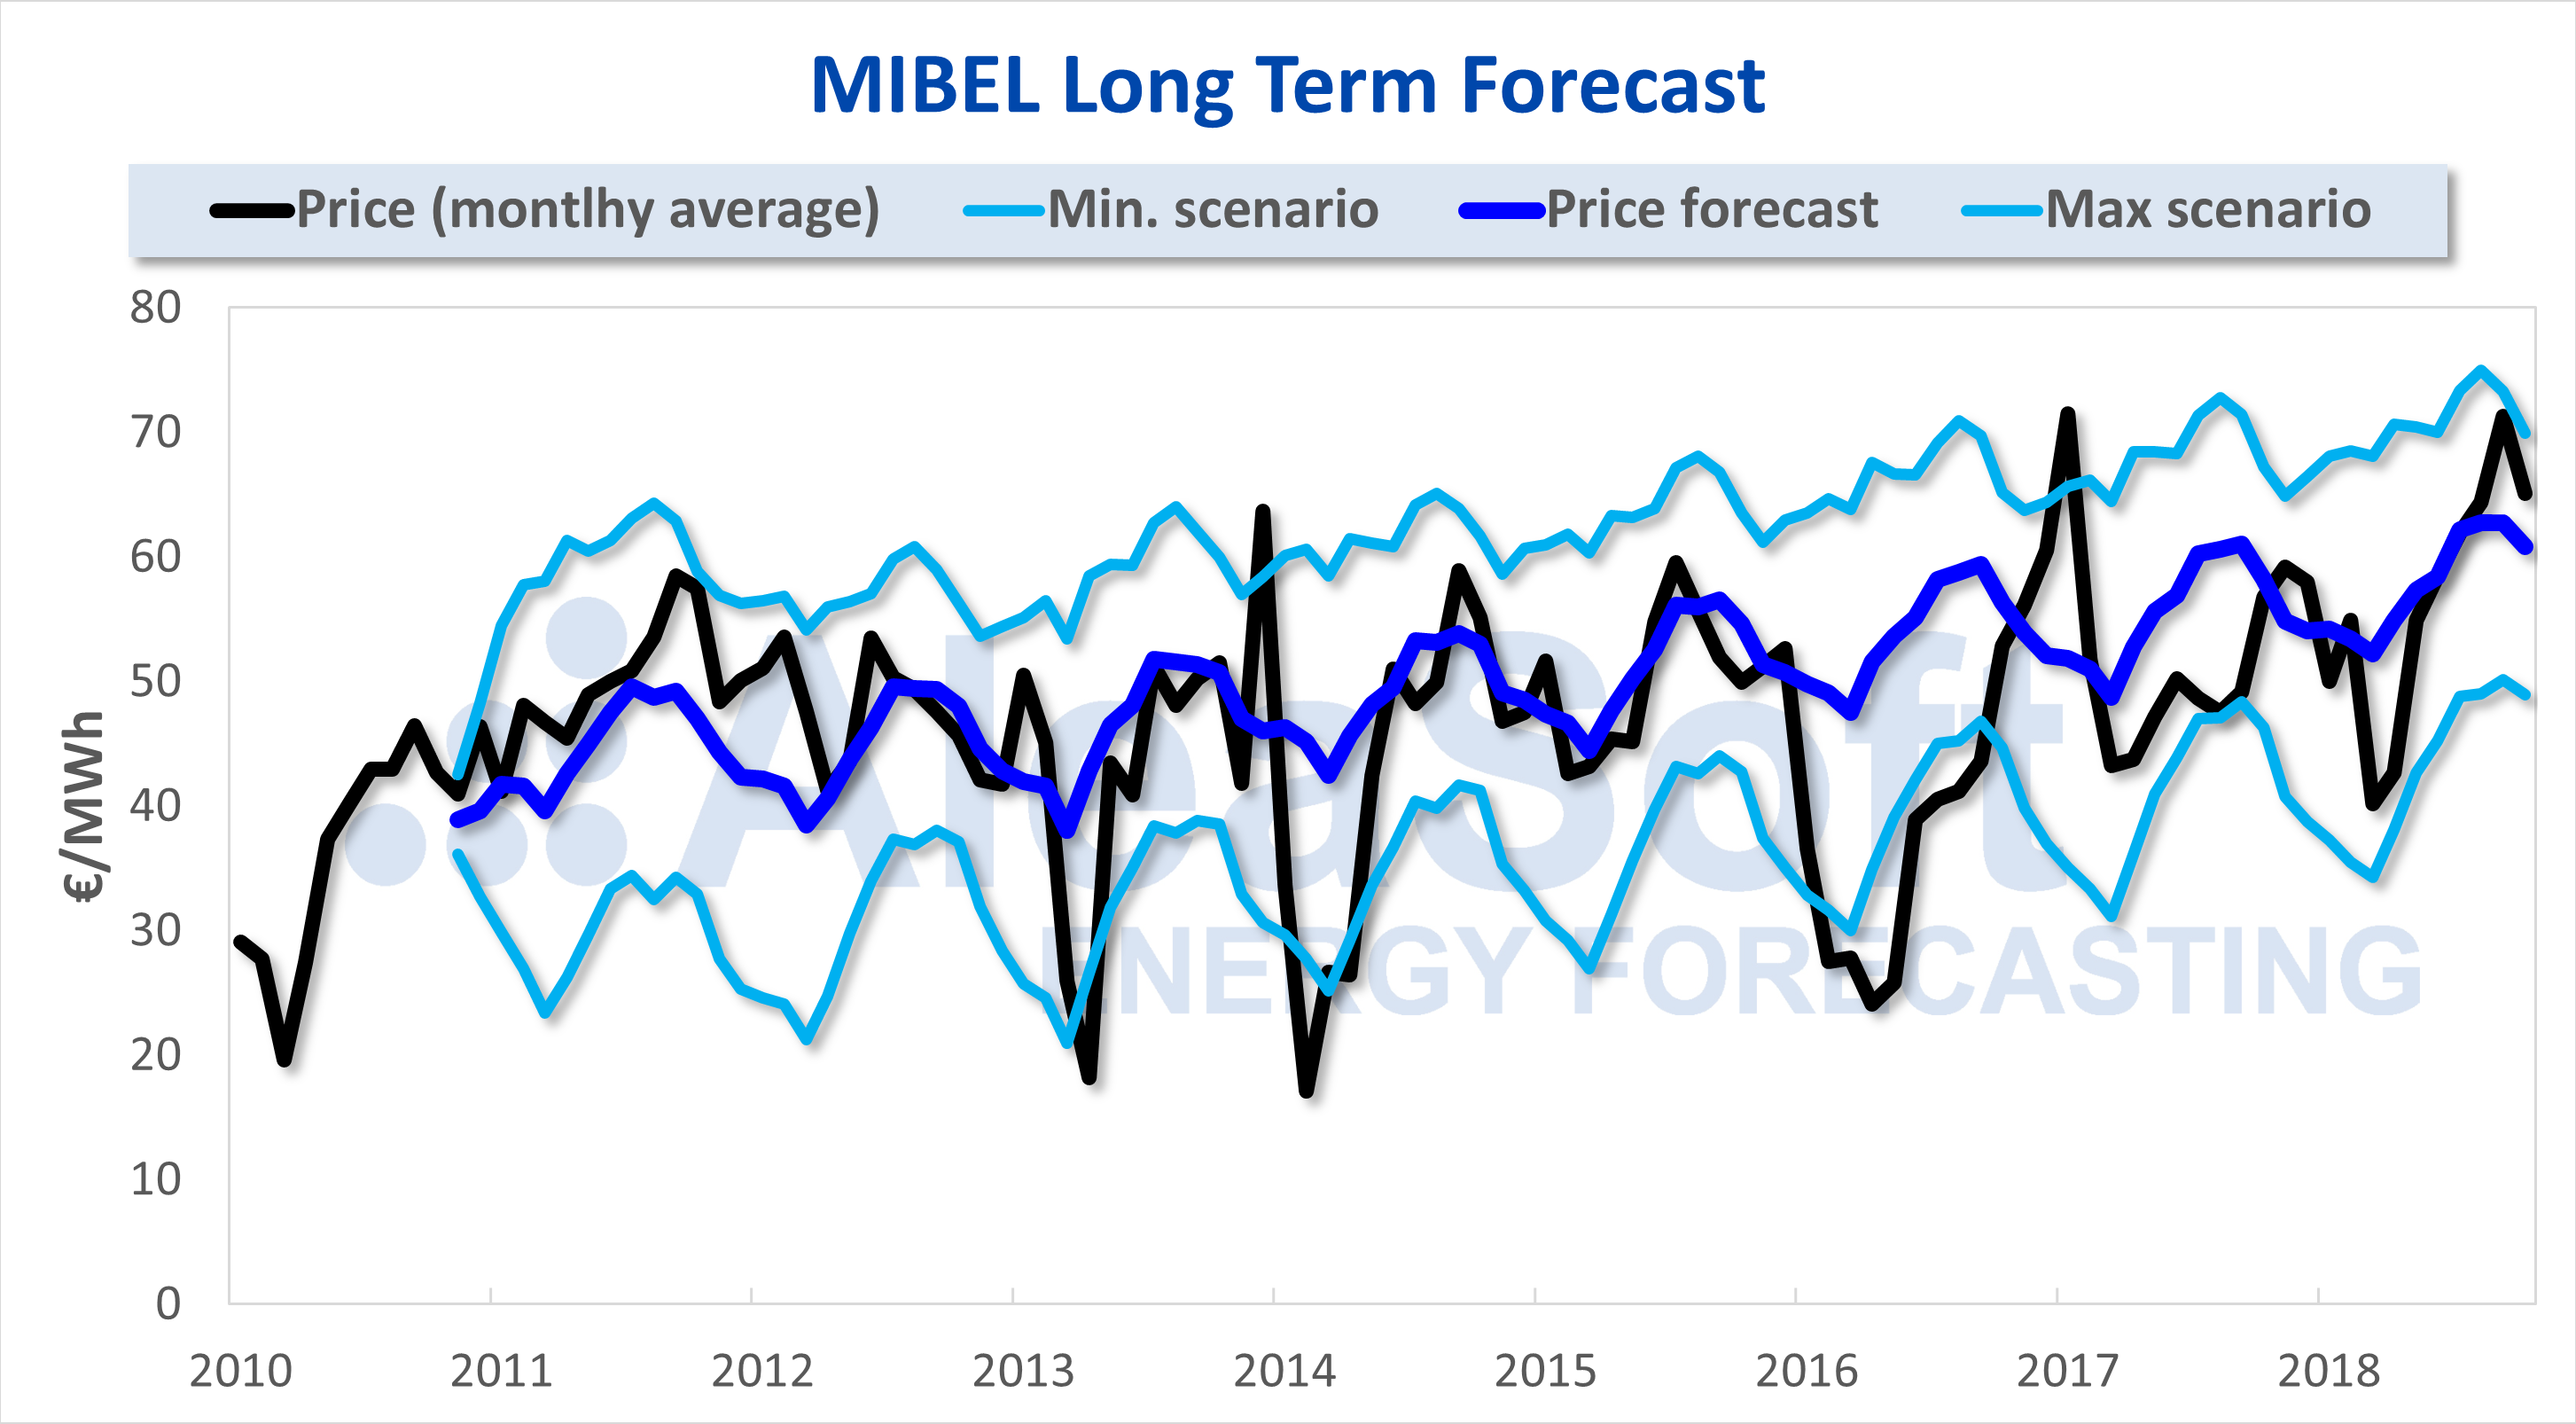 AleaSoft - Long term Spain MIBEL price forecast